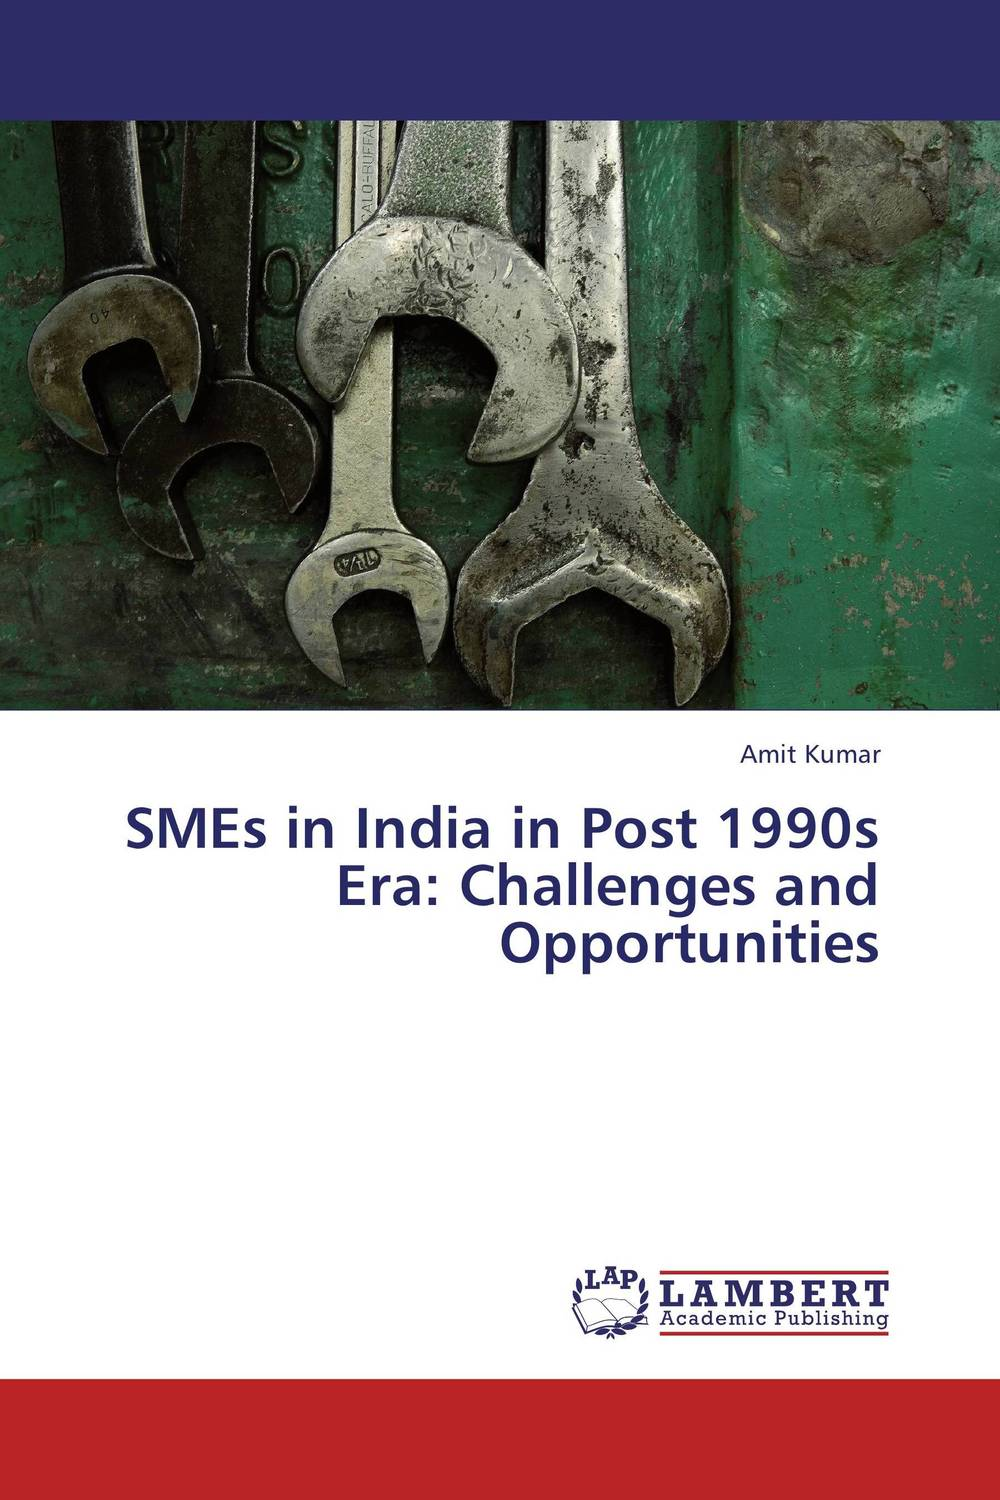 SMEs in India in Post 1990s Era: Challenges and Opportunities impact of globalization on production and export of turmeric in india